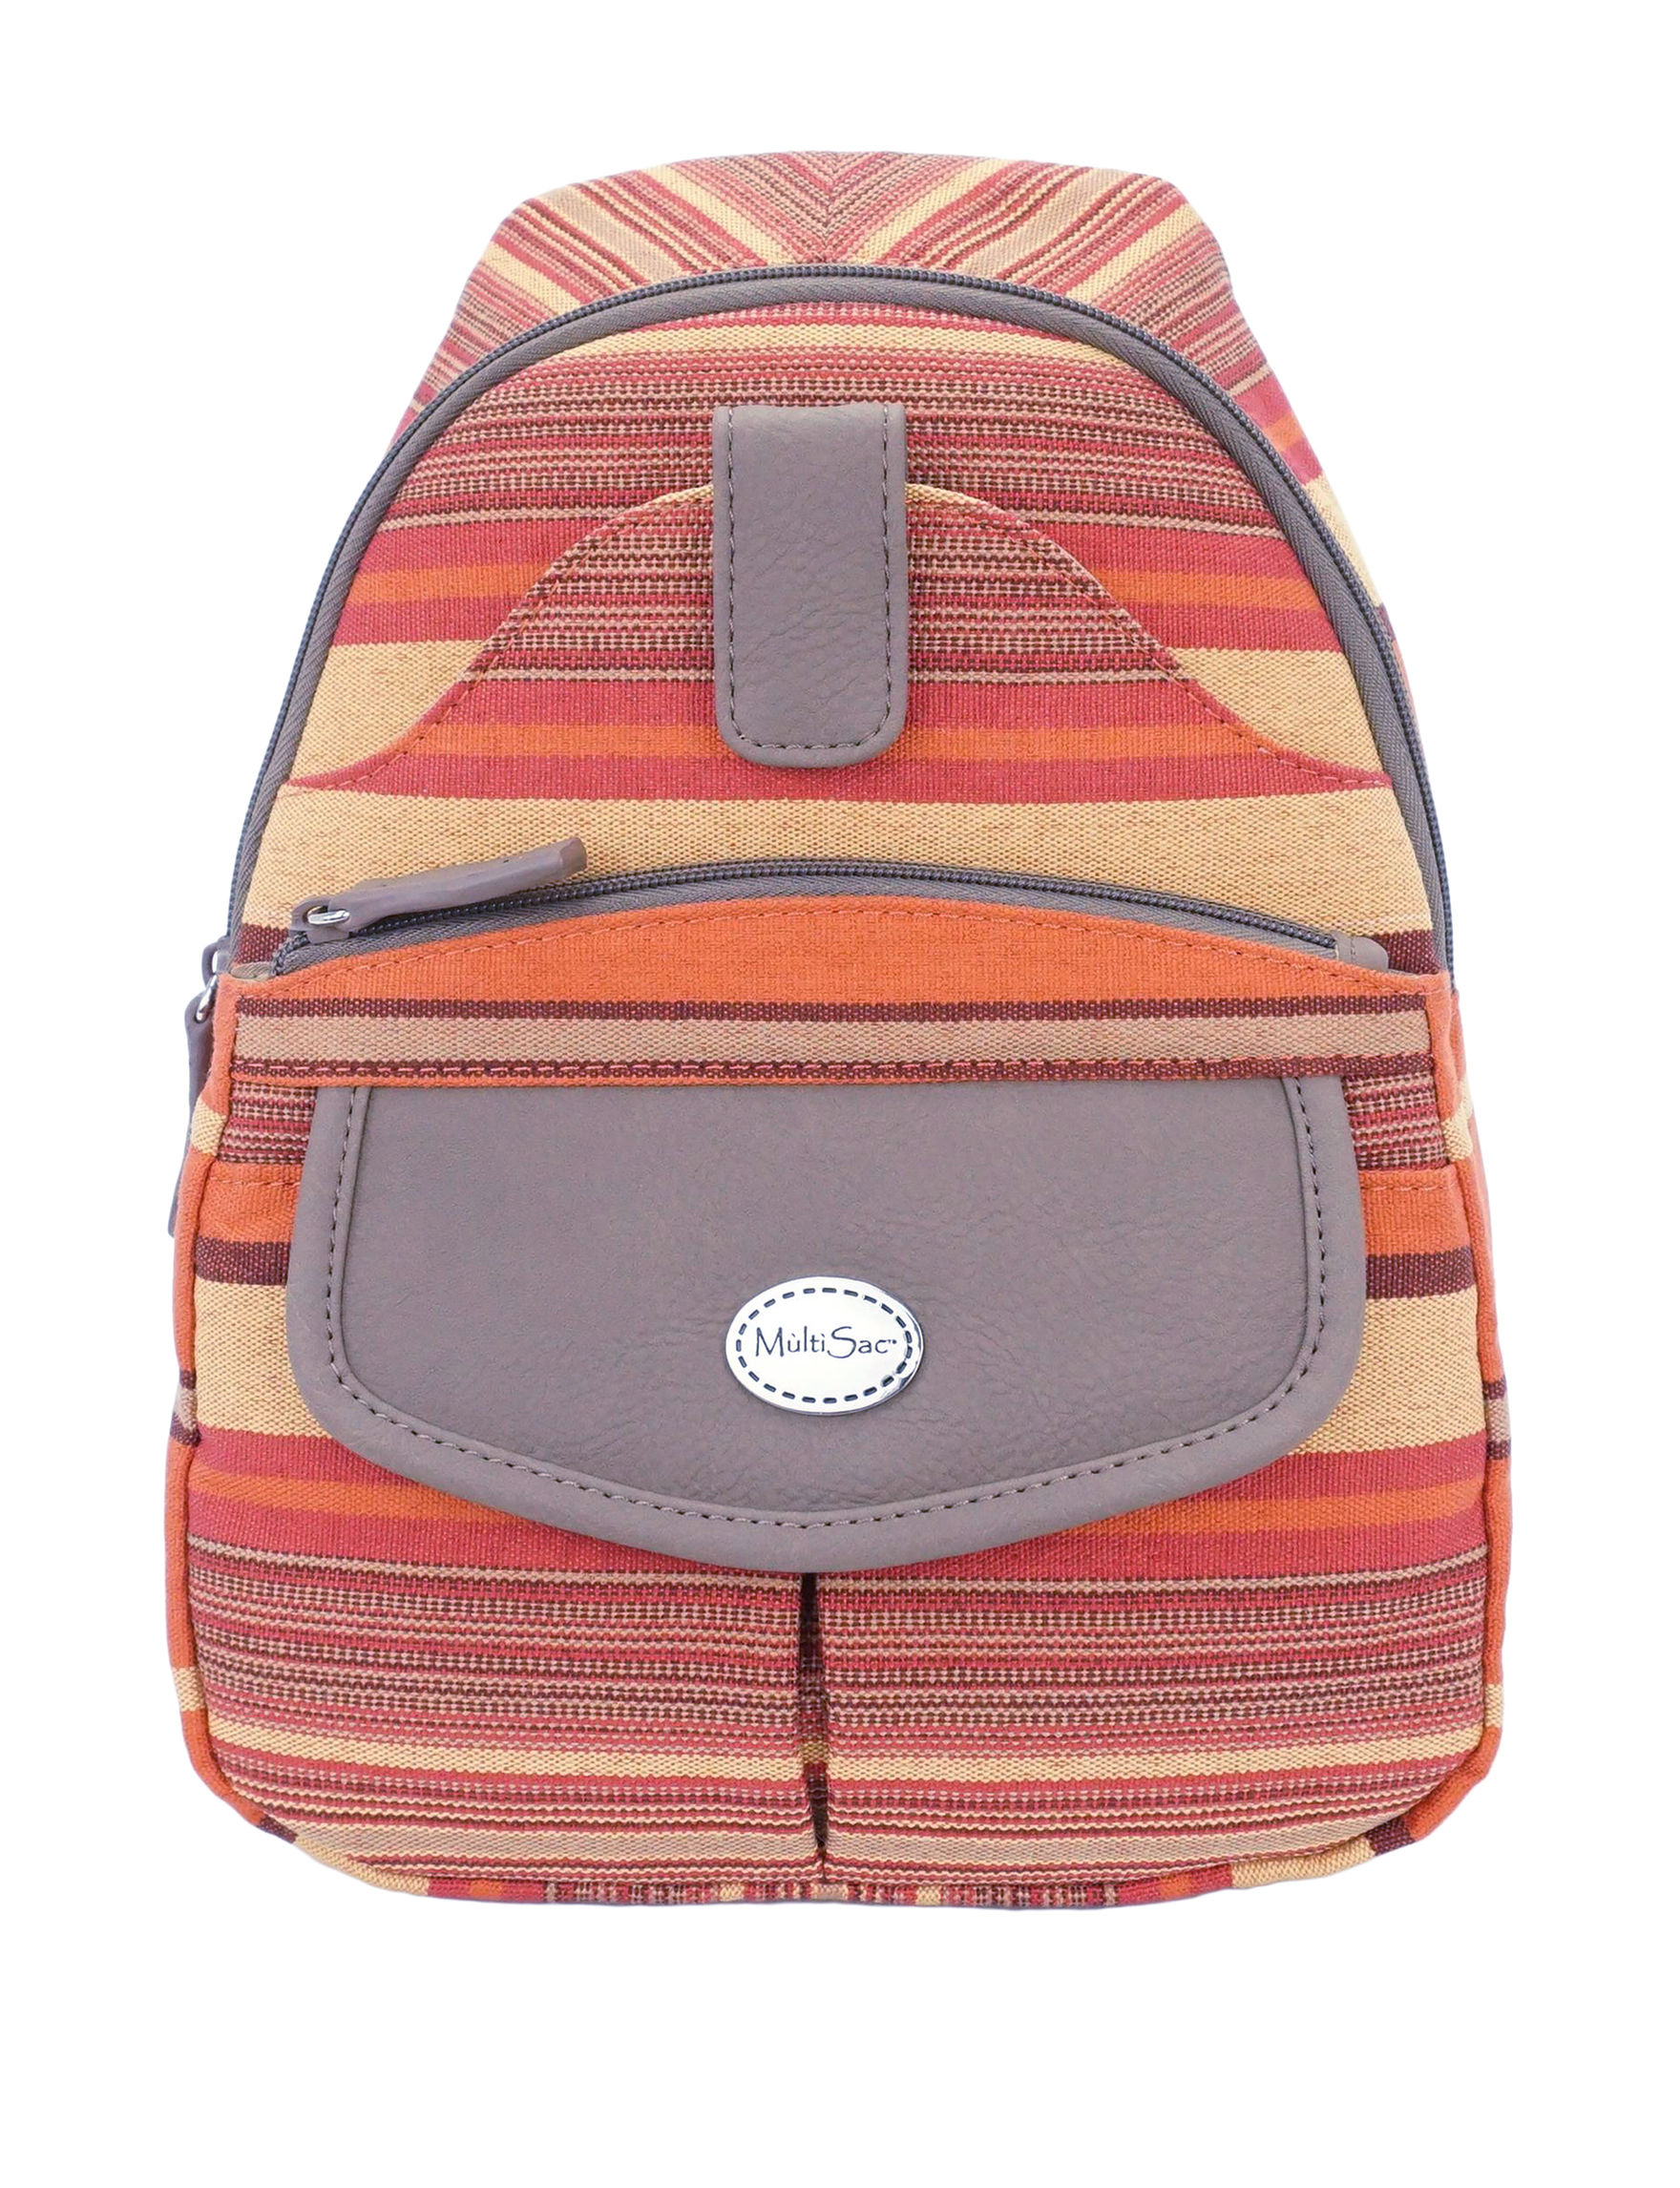 Koltov Stripe Bookbags & Backpacks